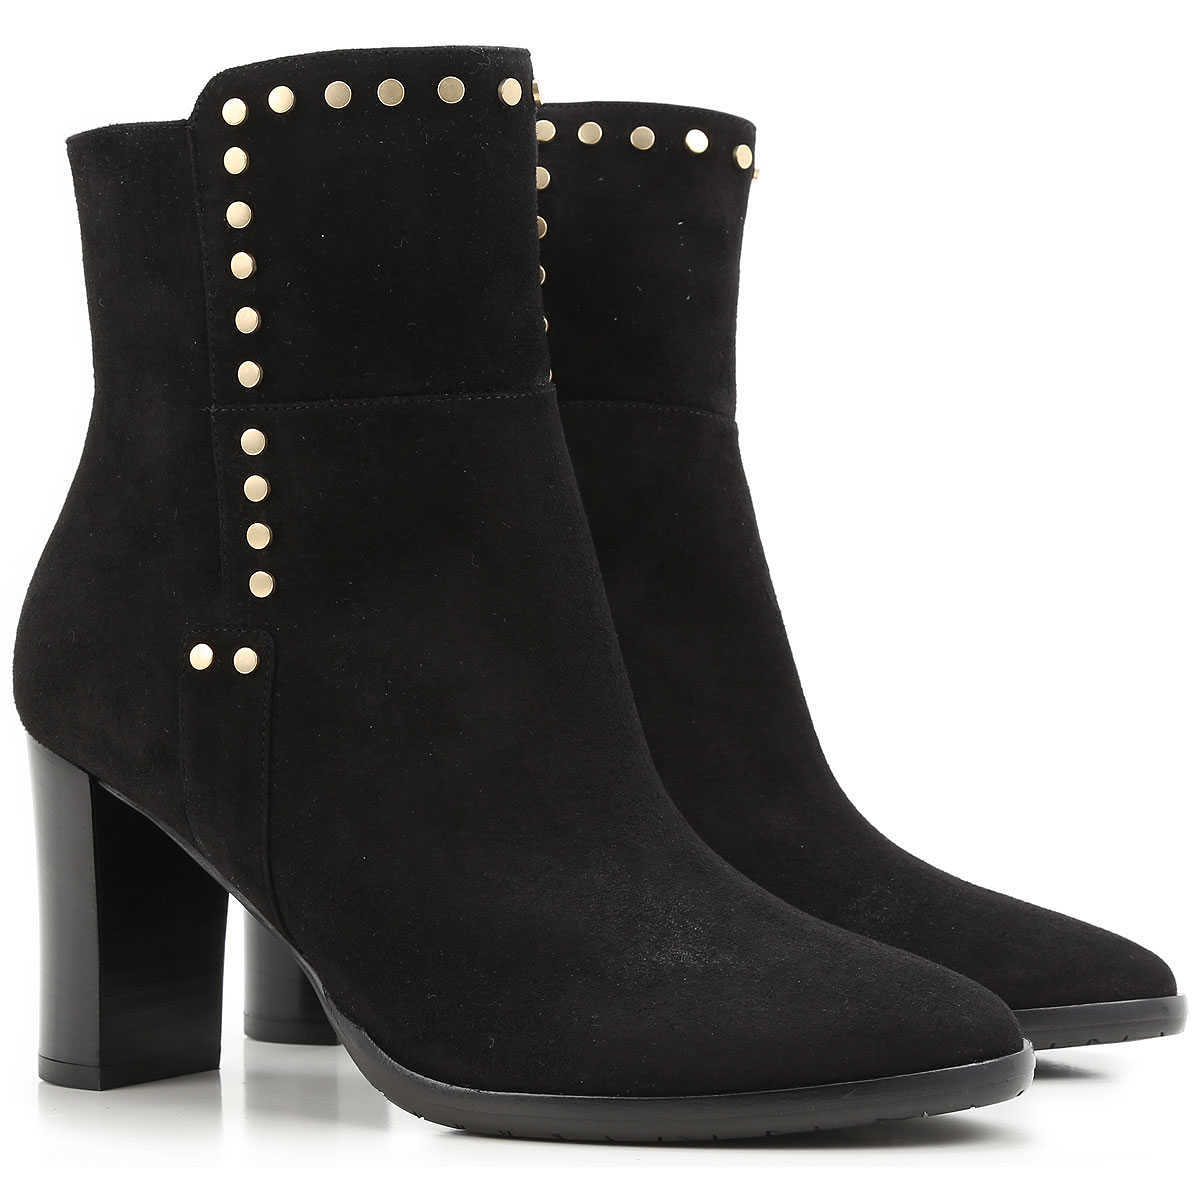 Jimmy Choo Boots for Women 3.5 7.5 Booties On Sale in Outlet UK - GOOFASH